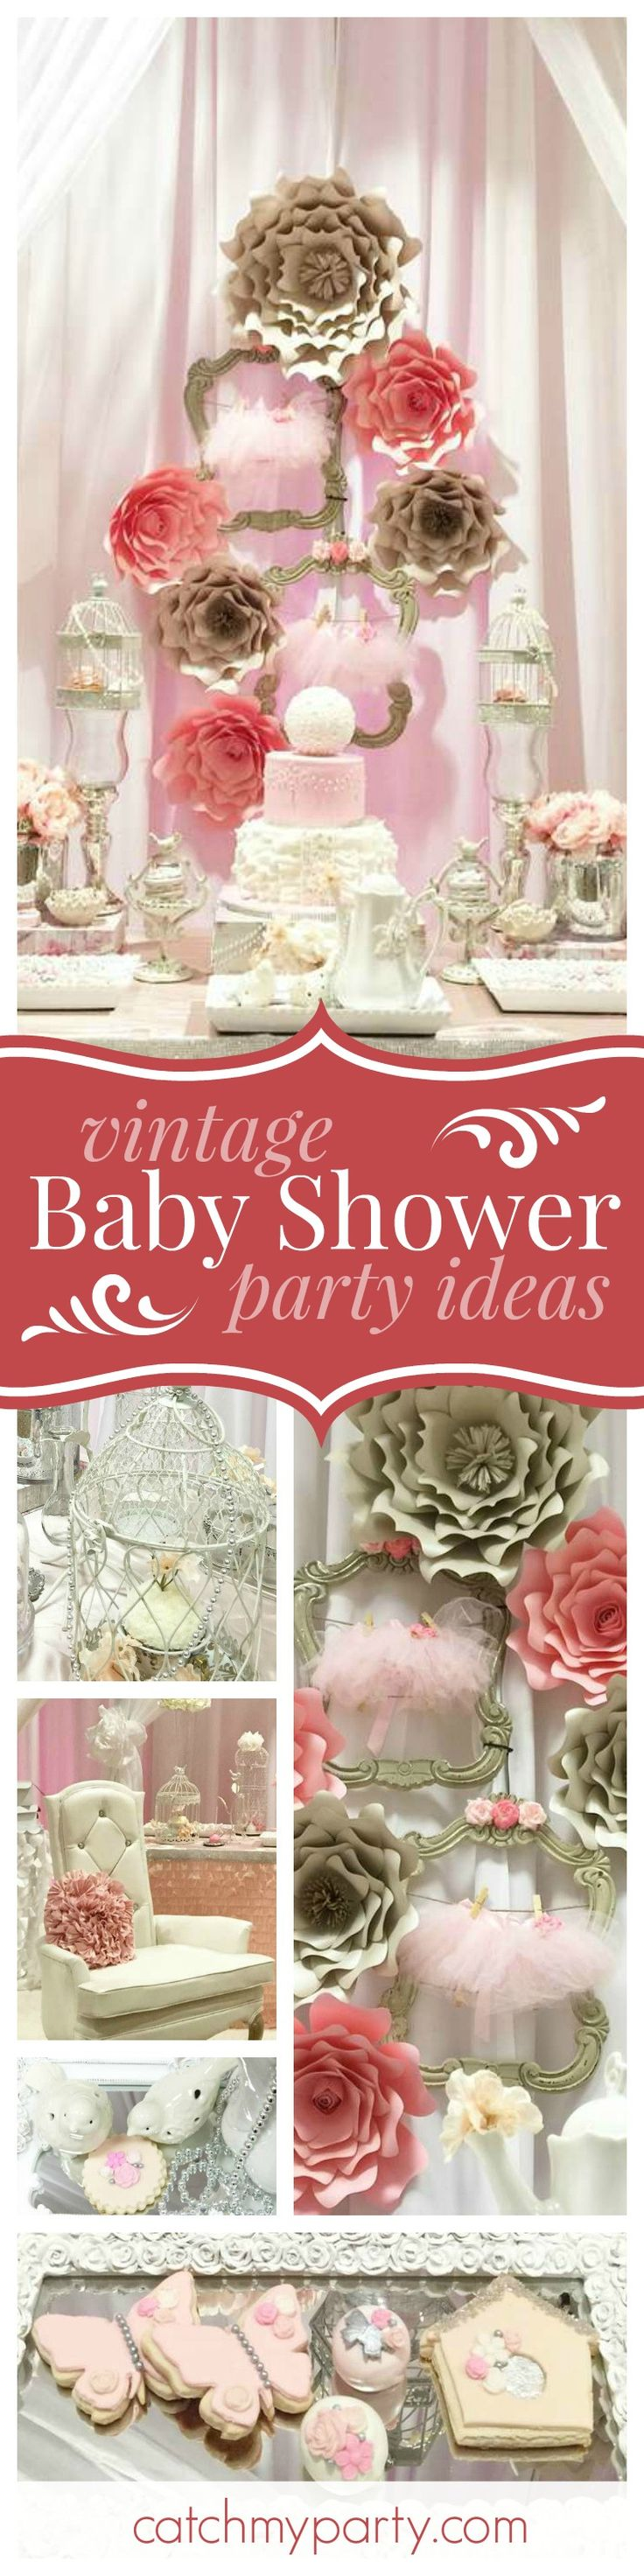 23 best images about Sweet Vintage Baby Shower on Pinterest